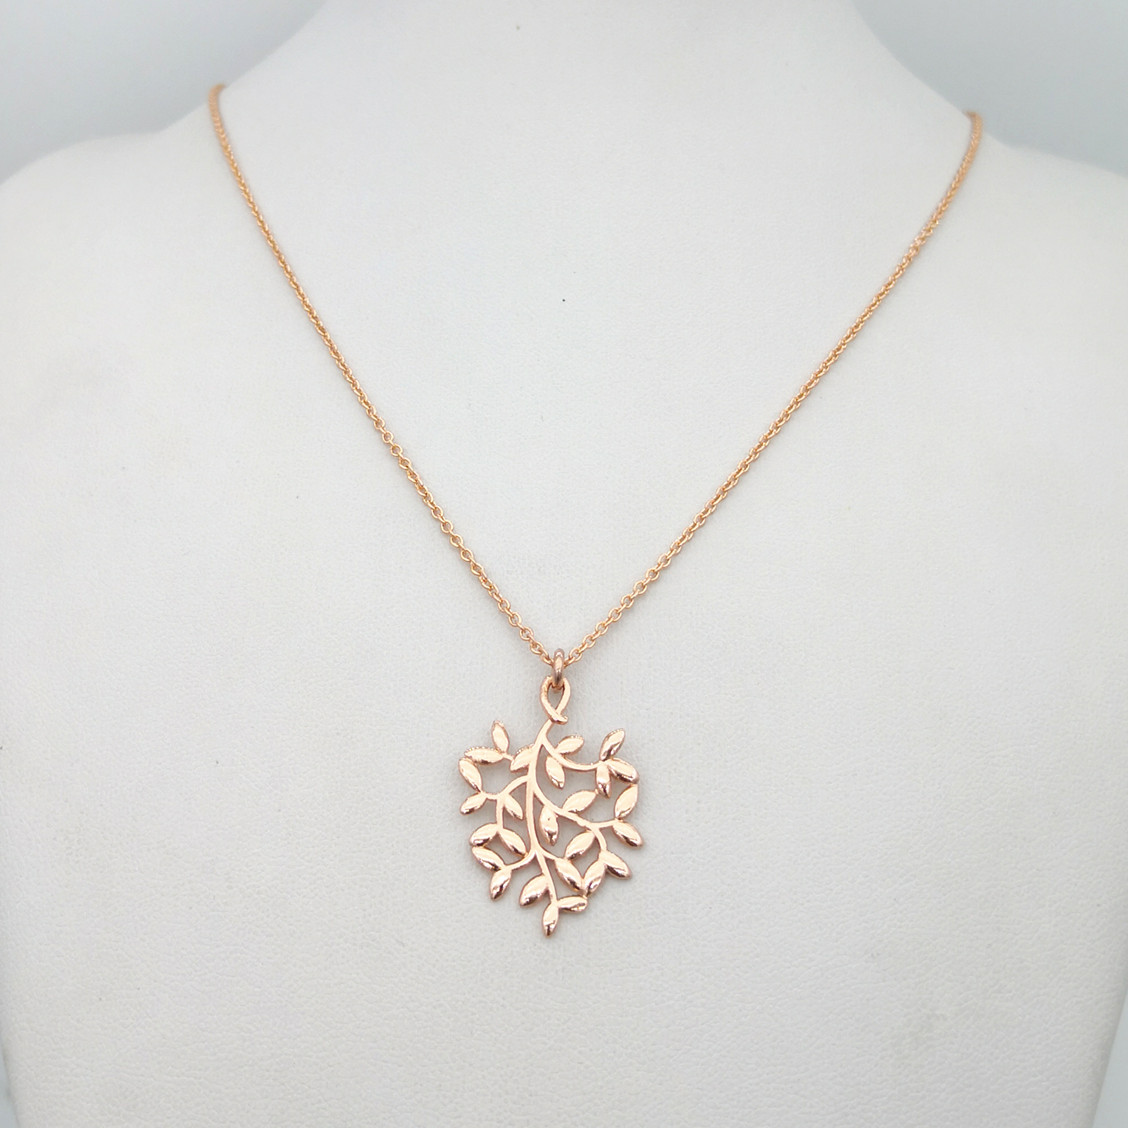 Mrs Sterling silver original classic rose gold plant olive leaves necklace pendant lovers festival gift necklace jewelry